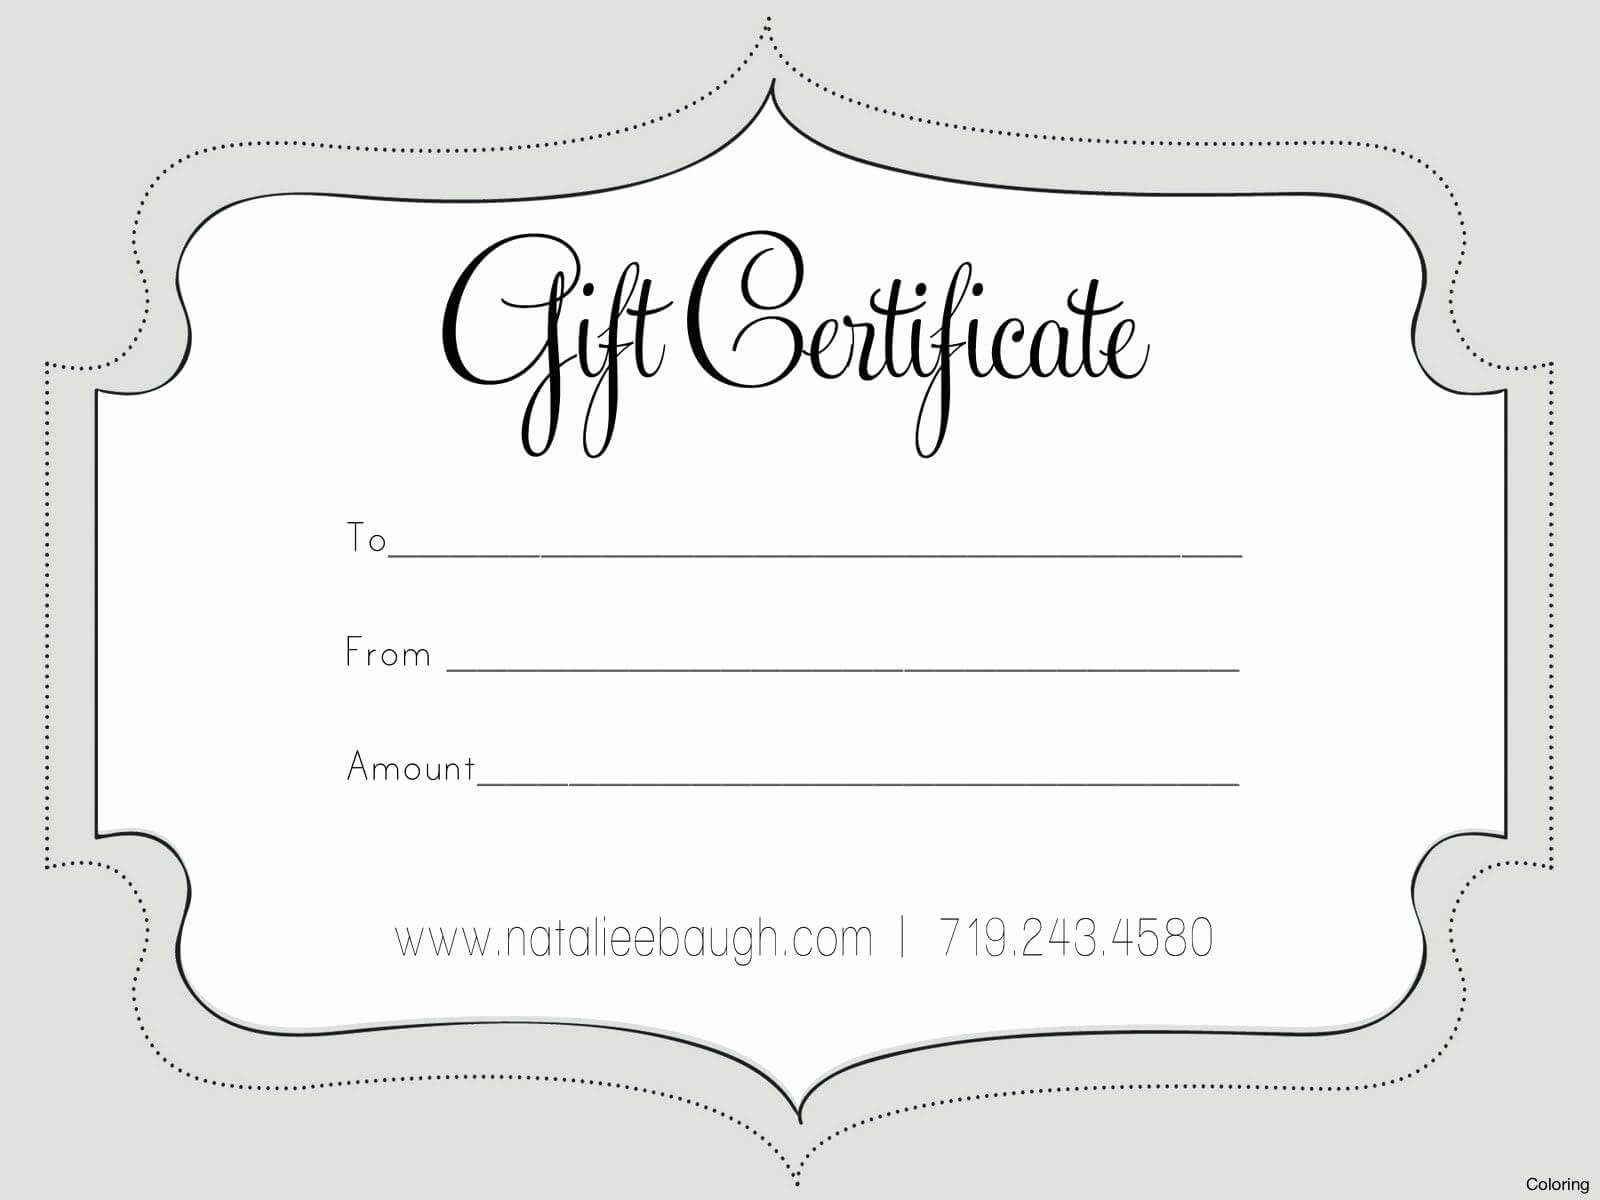 022 Gift Registry Card Template Free New Nail Certificate Intended For Nail Gift Certificate Template Free